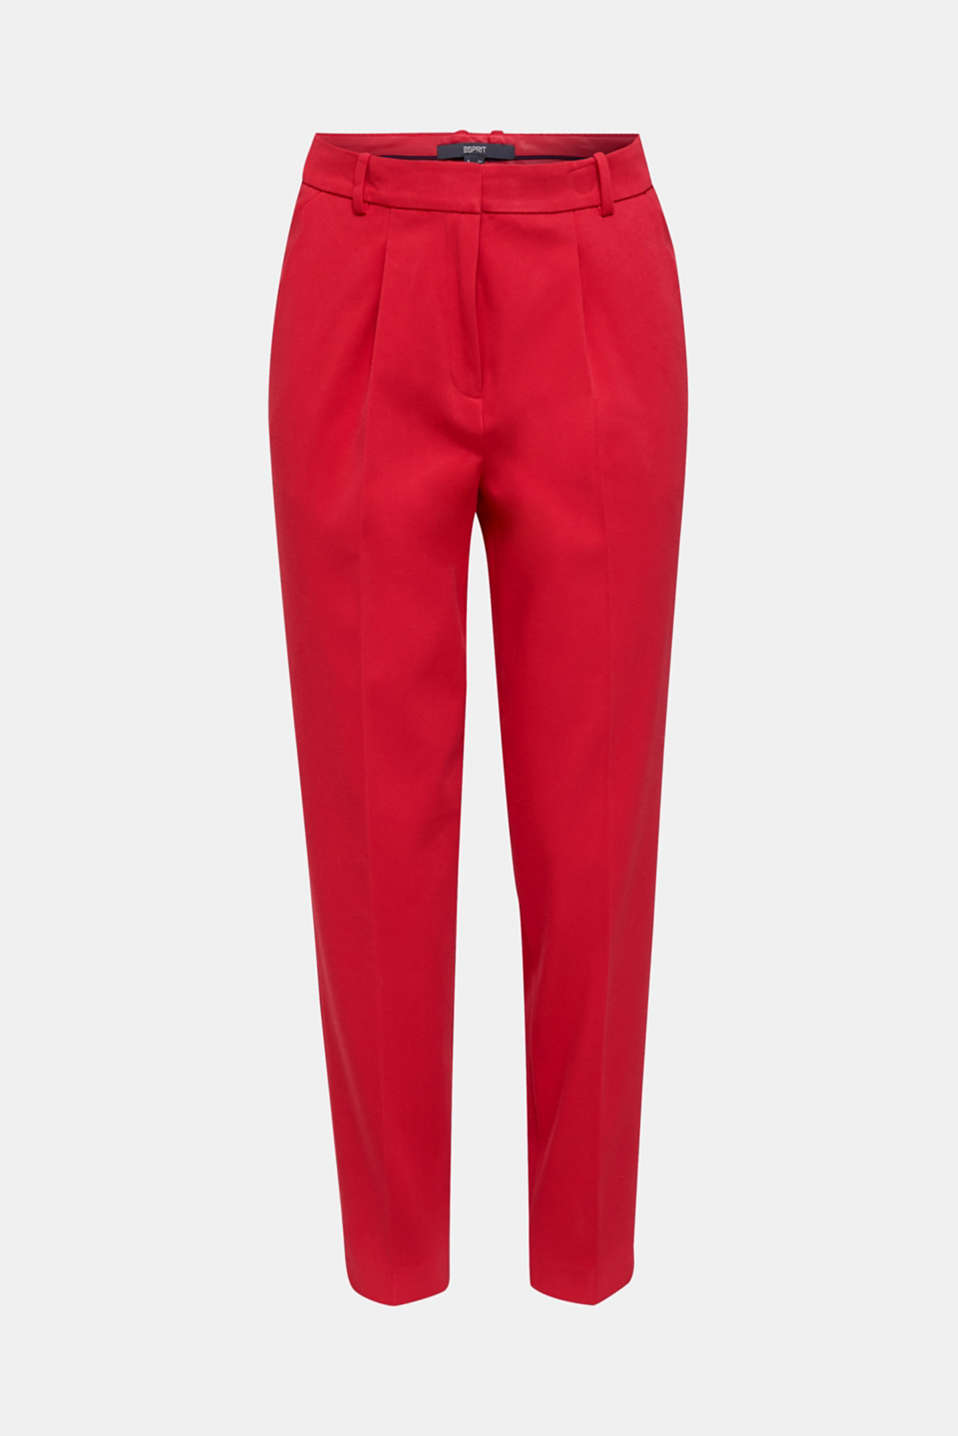 MODERN mix + match trousers, RED, detail image number 7